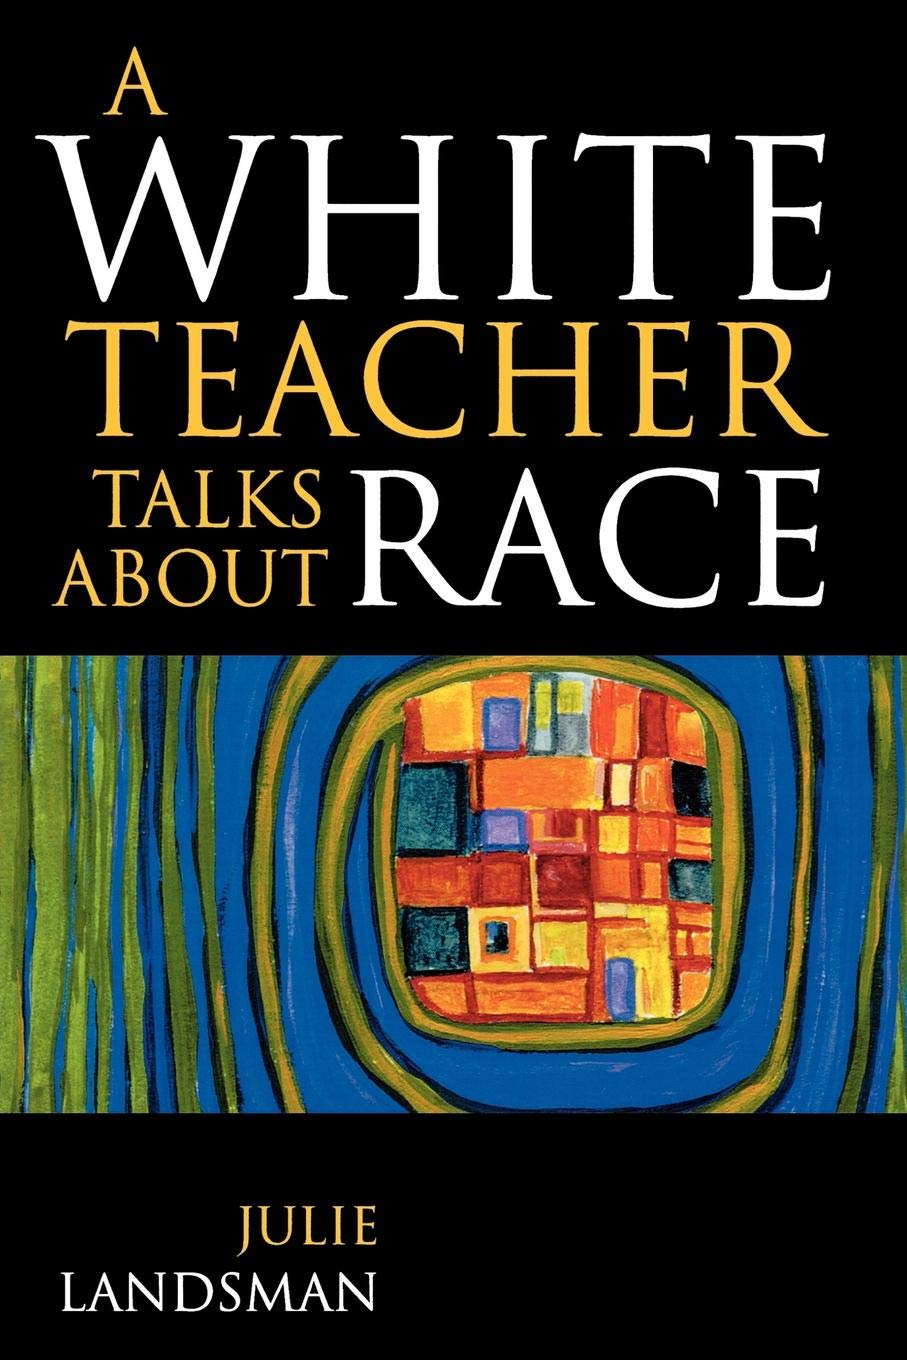 The Power Of Teacher Expectations How Racial Bias Hinders Student >> A White Teacher Talks About Race Julie Landsman 9781578861811